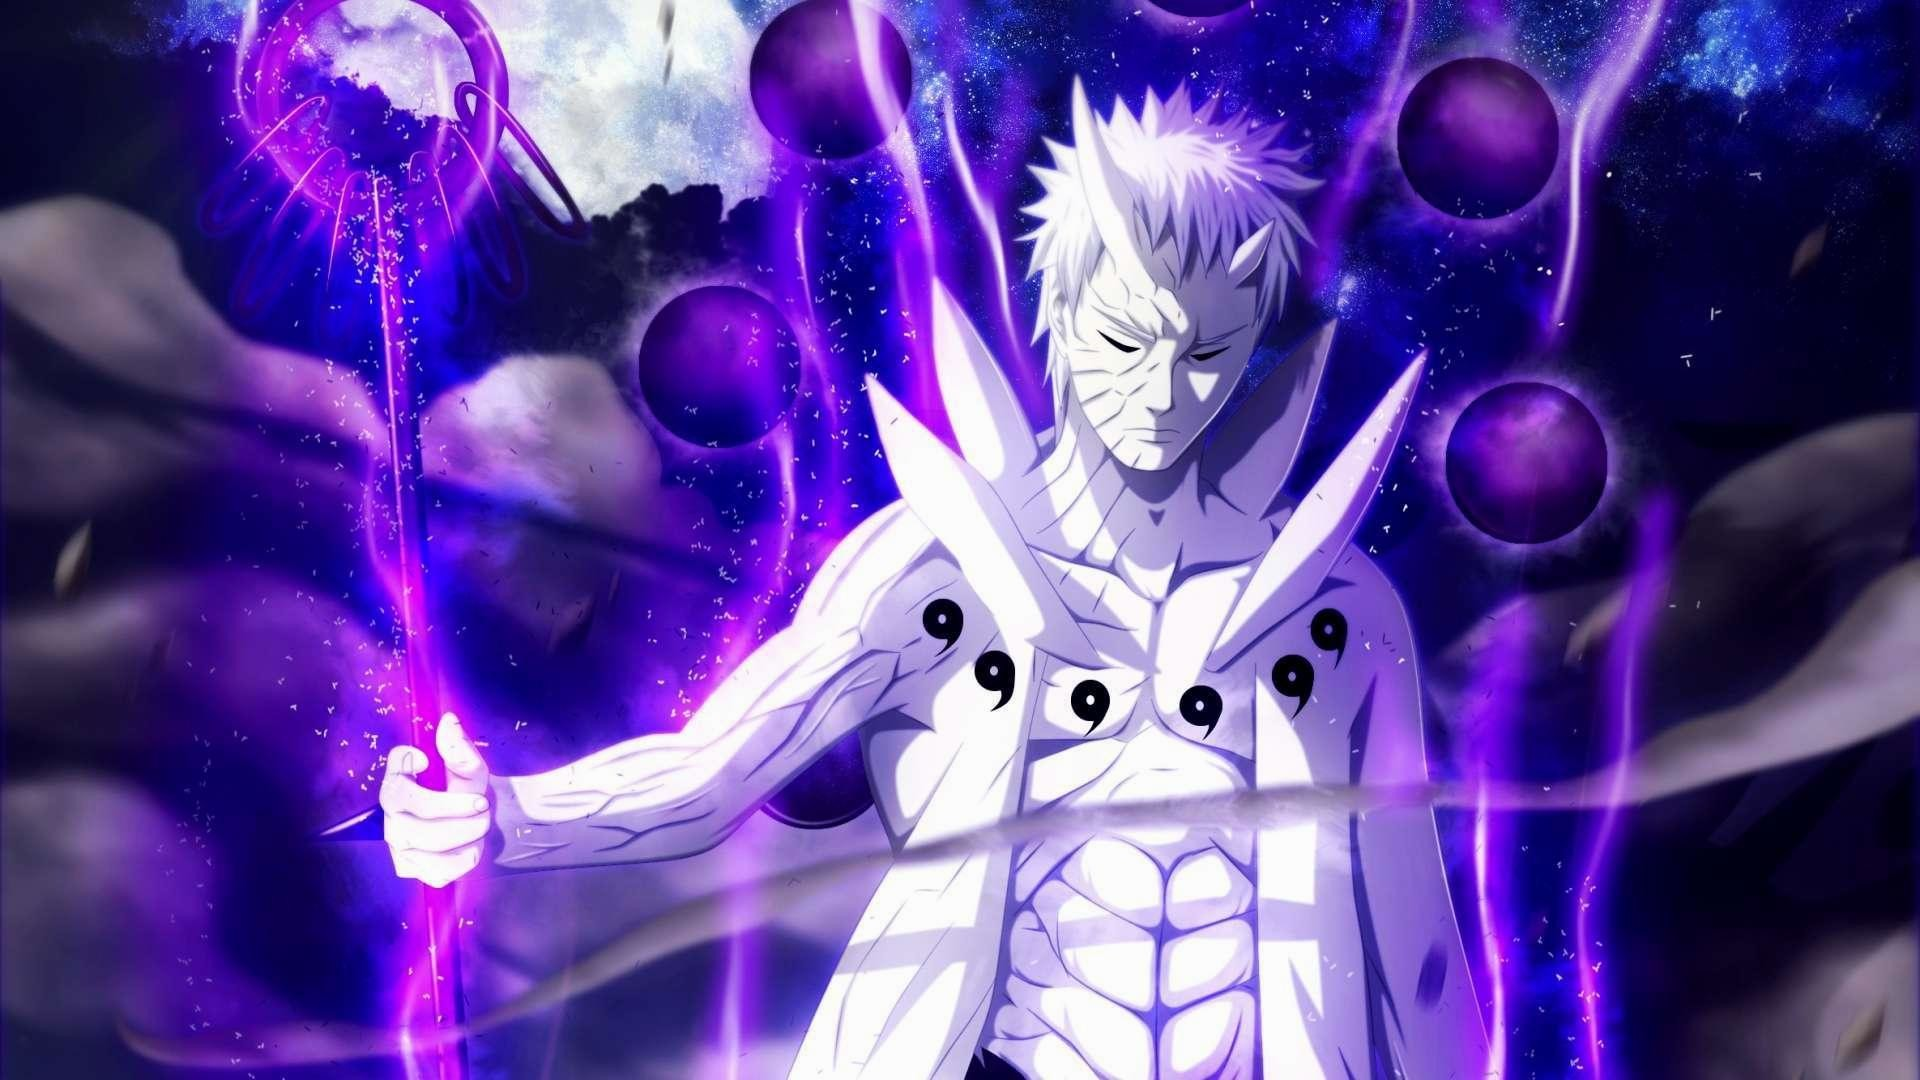 Res: 1920x1080, Full-HD-p-Anime-Desktop-Backgrounds-HD-Pictures-1920×1080-Anime-1080p-W- wallpaper-wp6605319